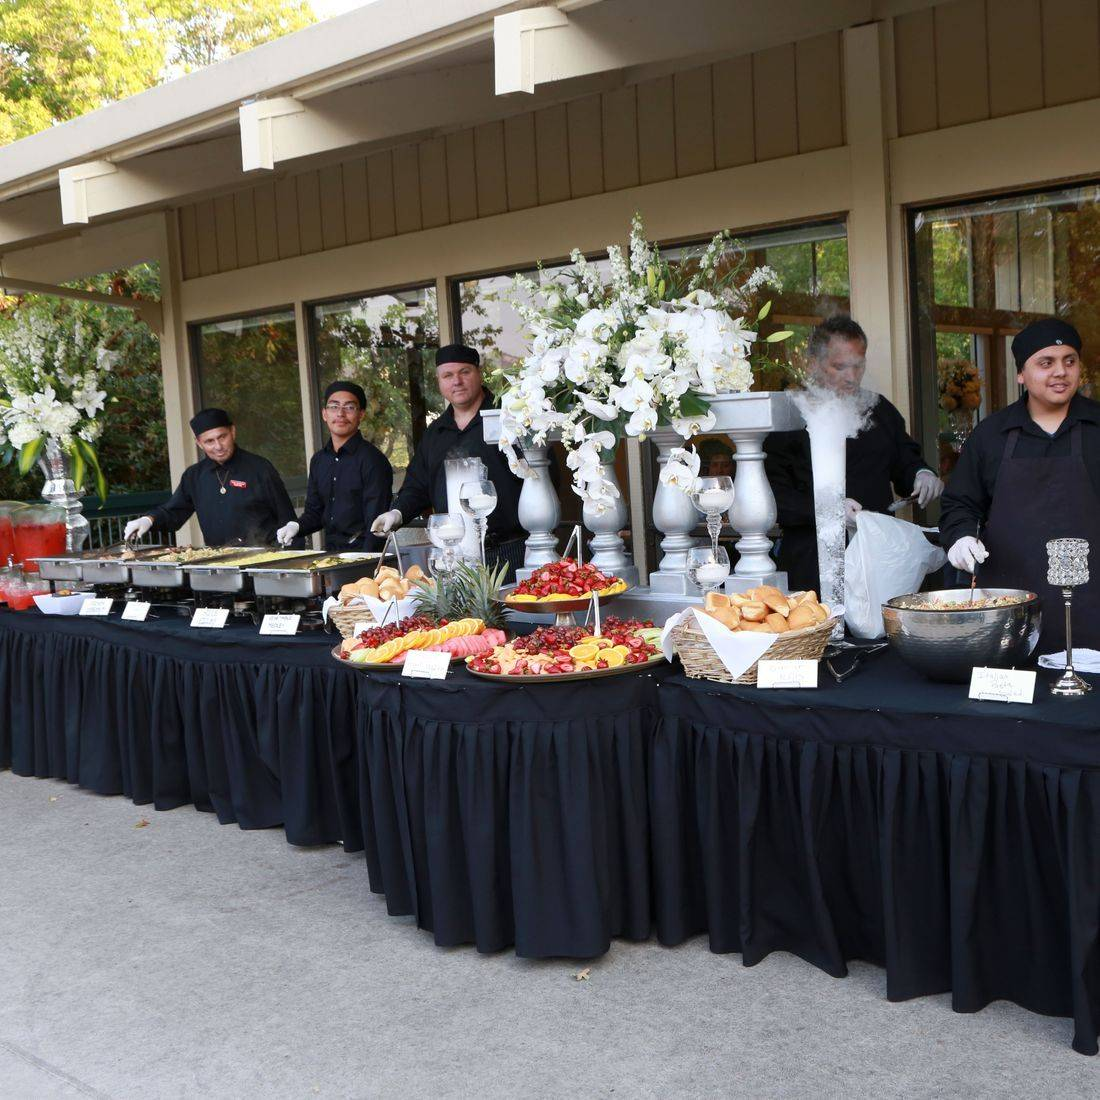 catering, buffet, servers, hot food